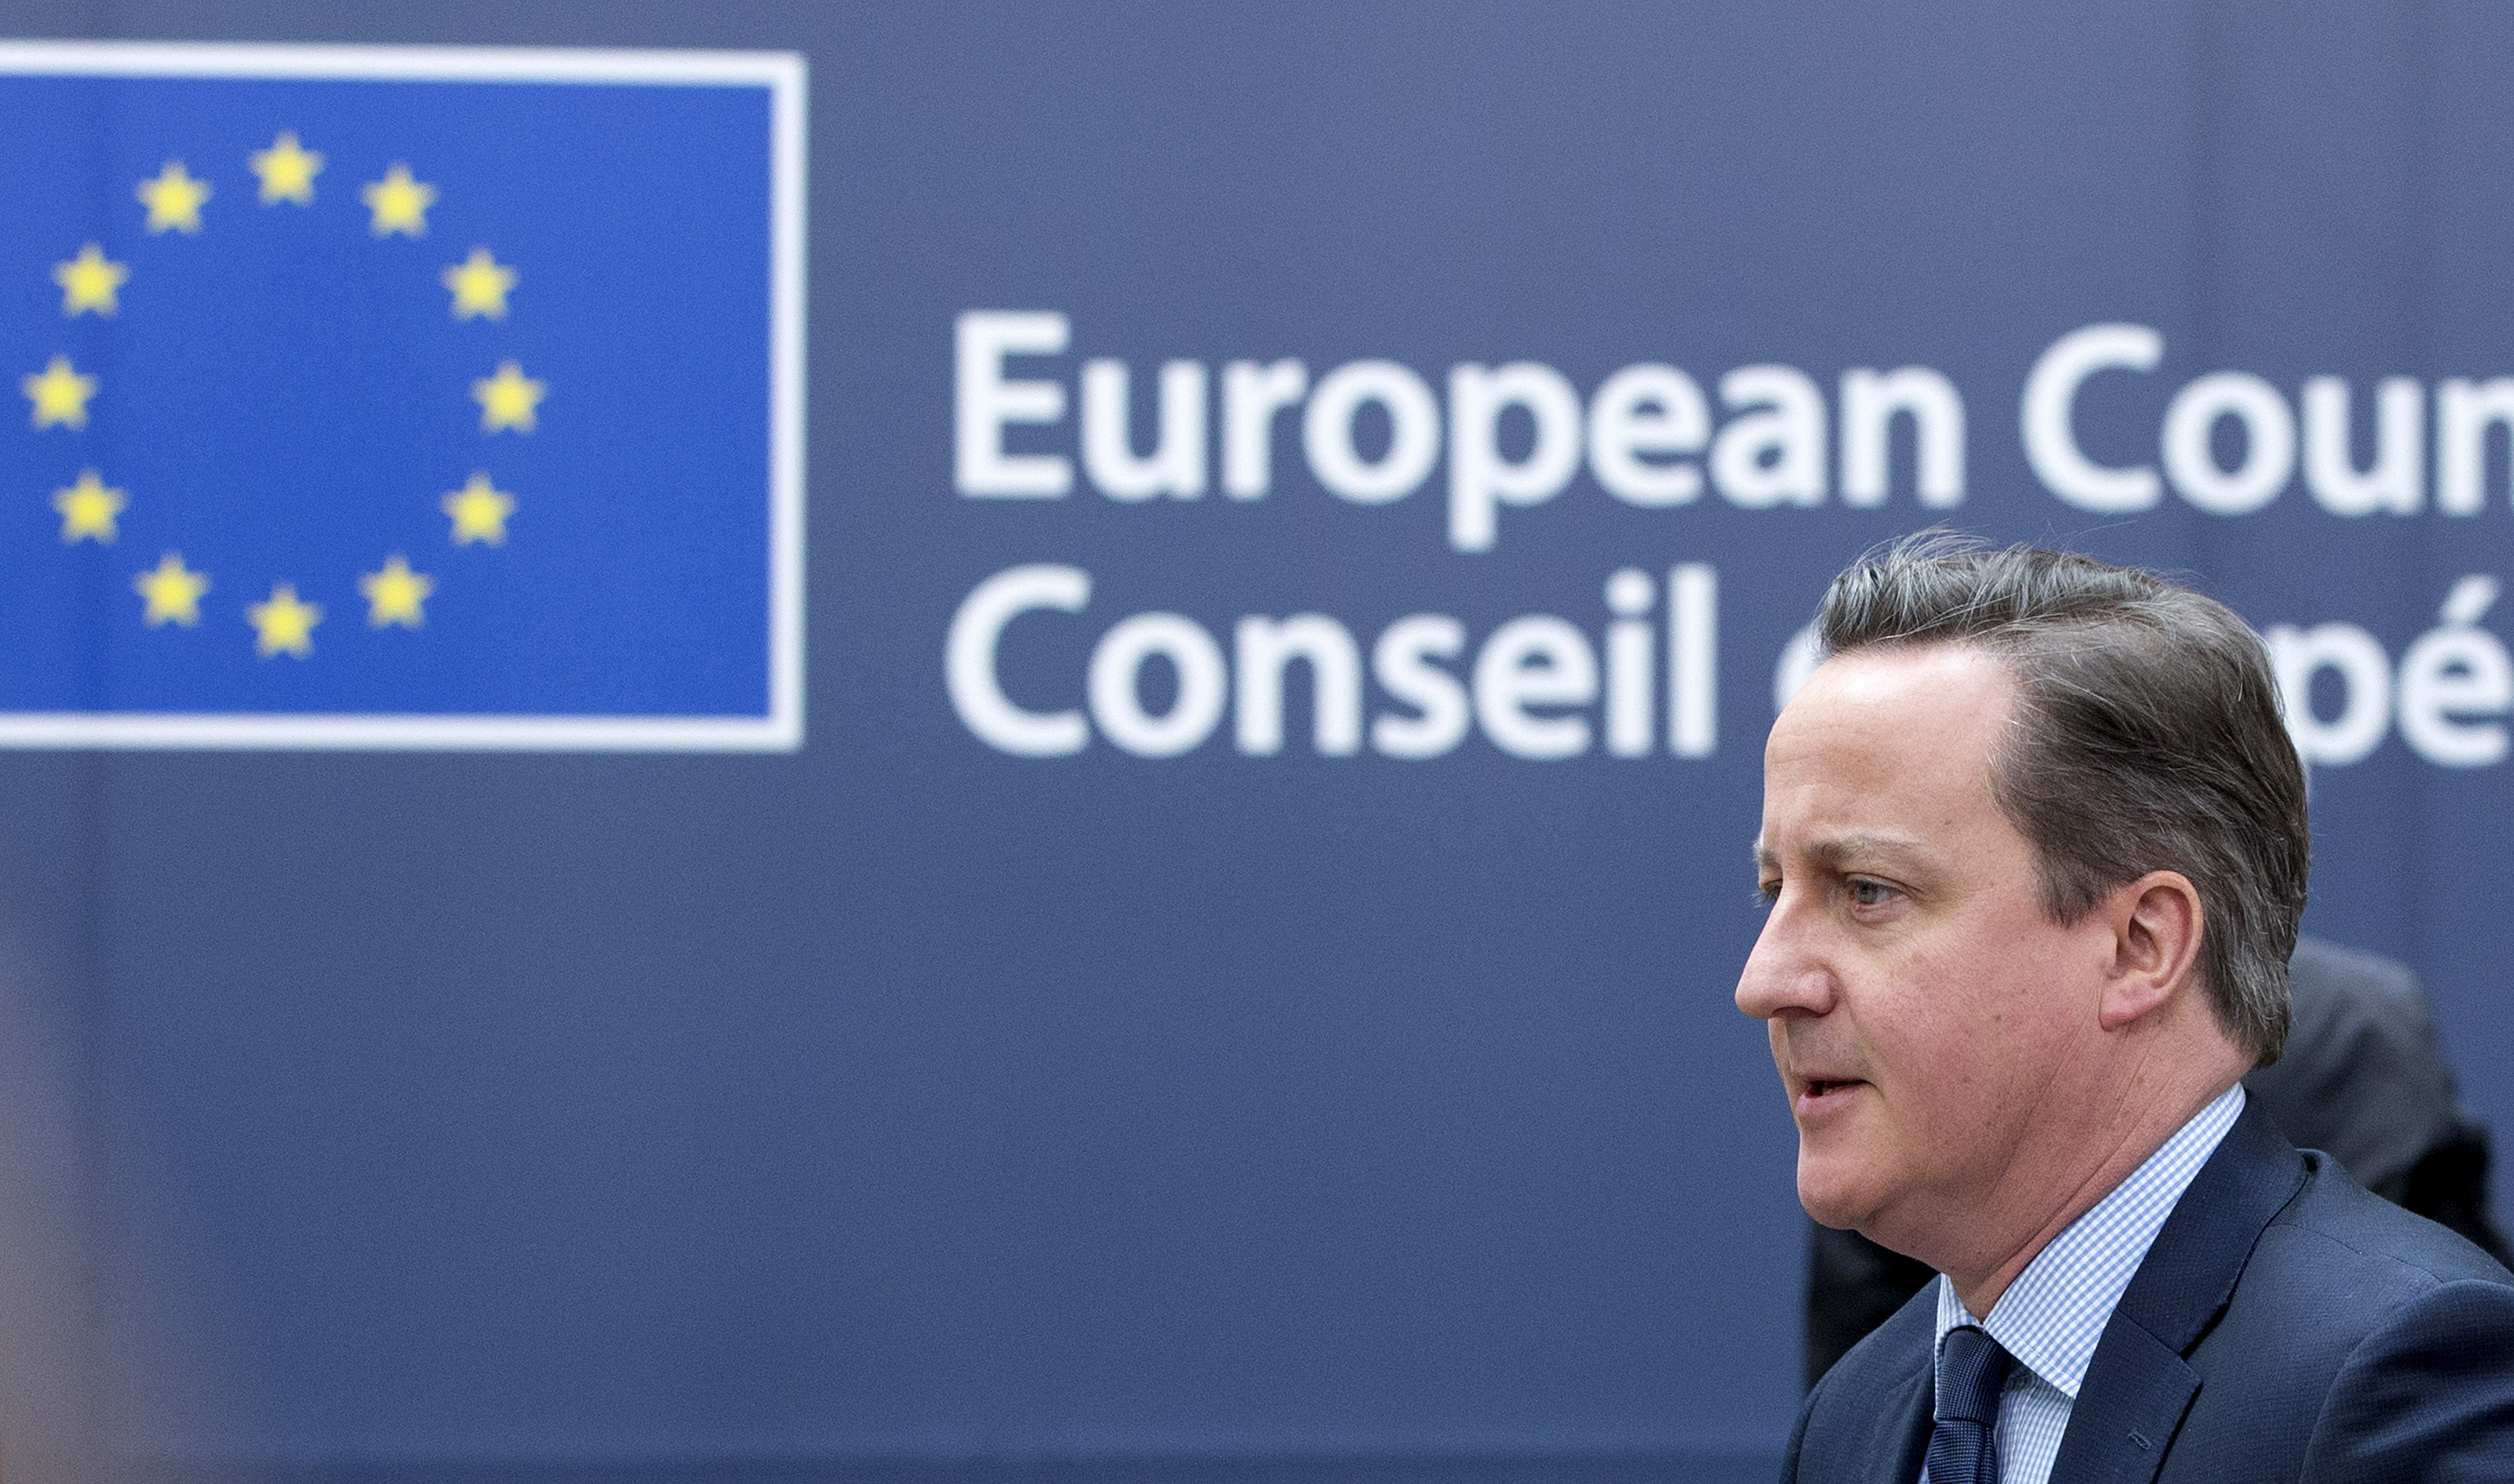 British Prime Minister David Cameron arrives at a European Union leaders summit addressing the talks about the so-called Brexit and the migrants crisis in Brussels, Belgium, February 18, 2016. REUTERS/Yves Herman - RTX27IHC